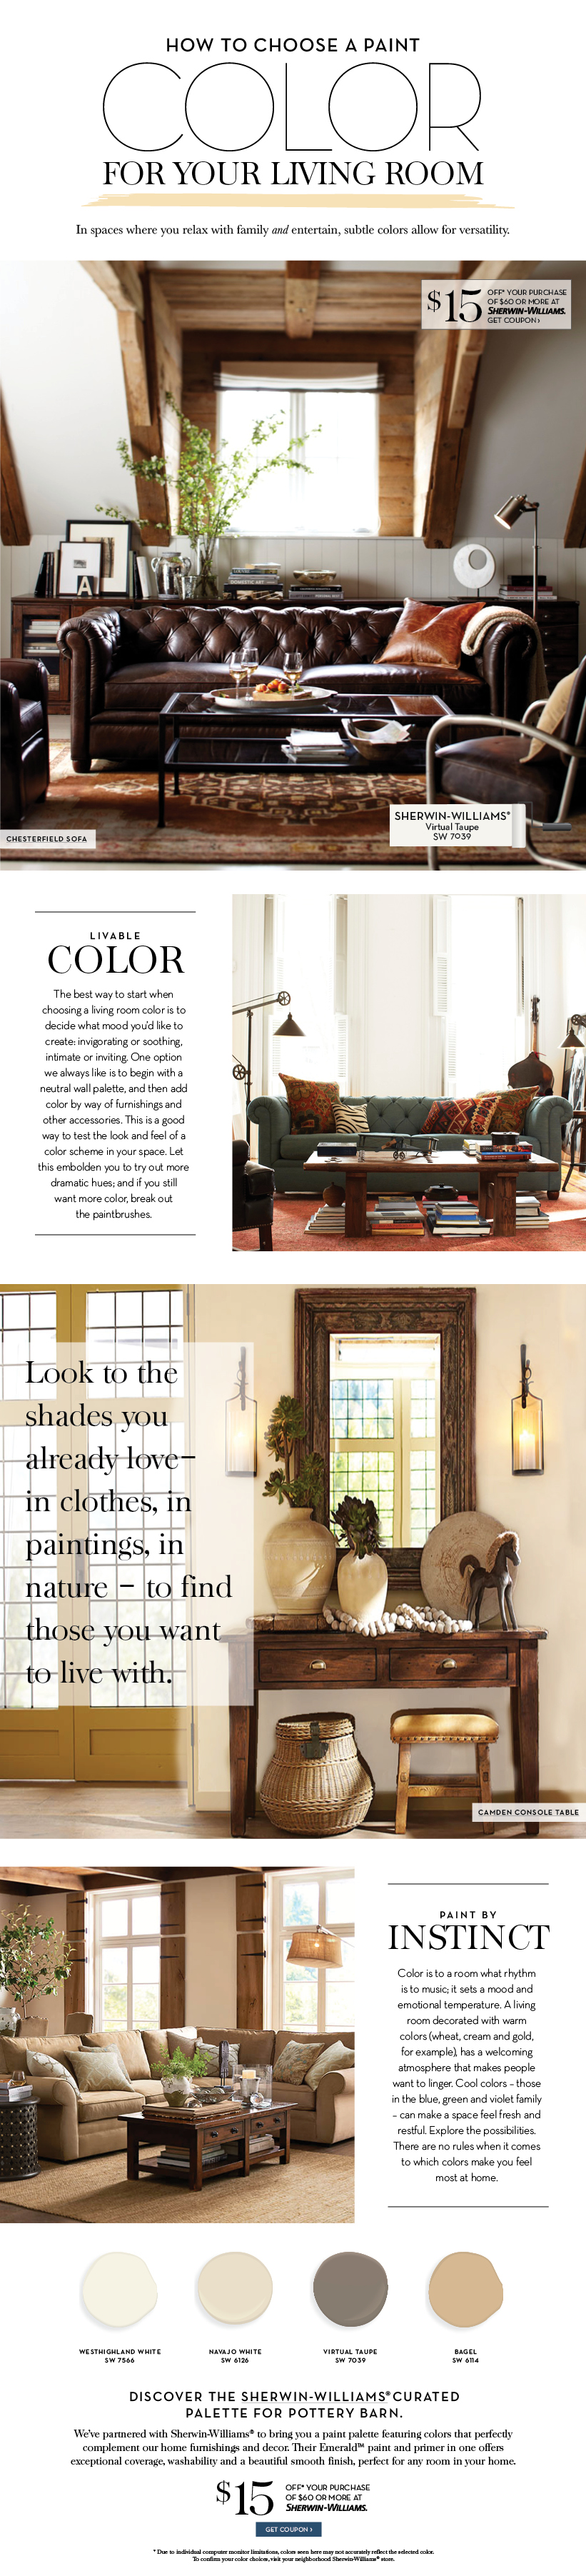 how to choose a paint colorreclaimed wood mirror frame How To Choose a Paint Color